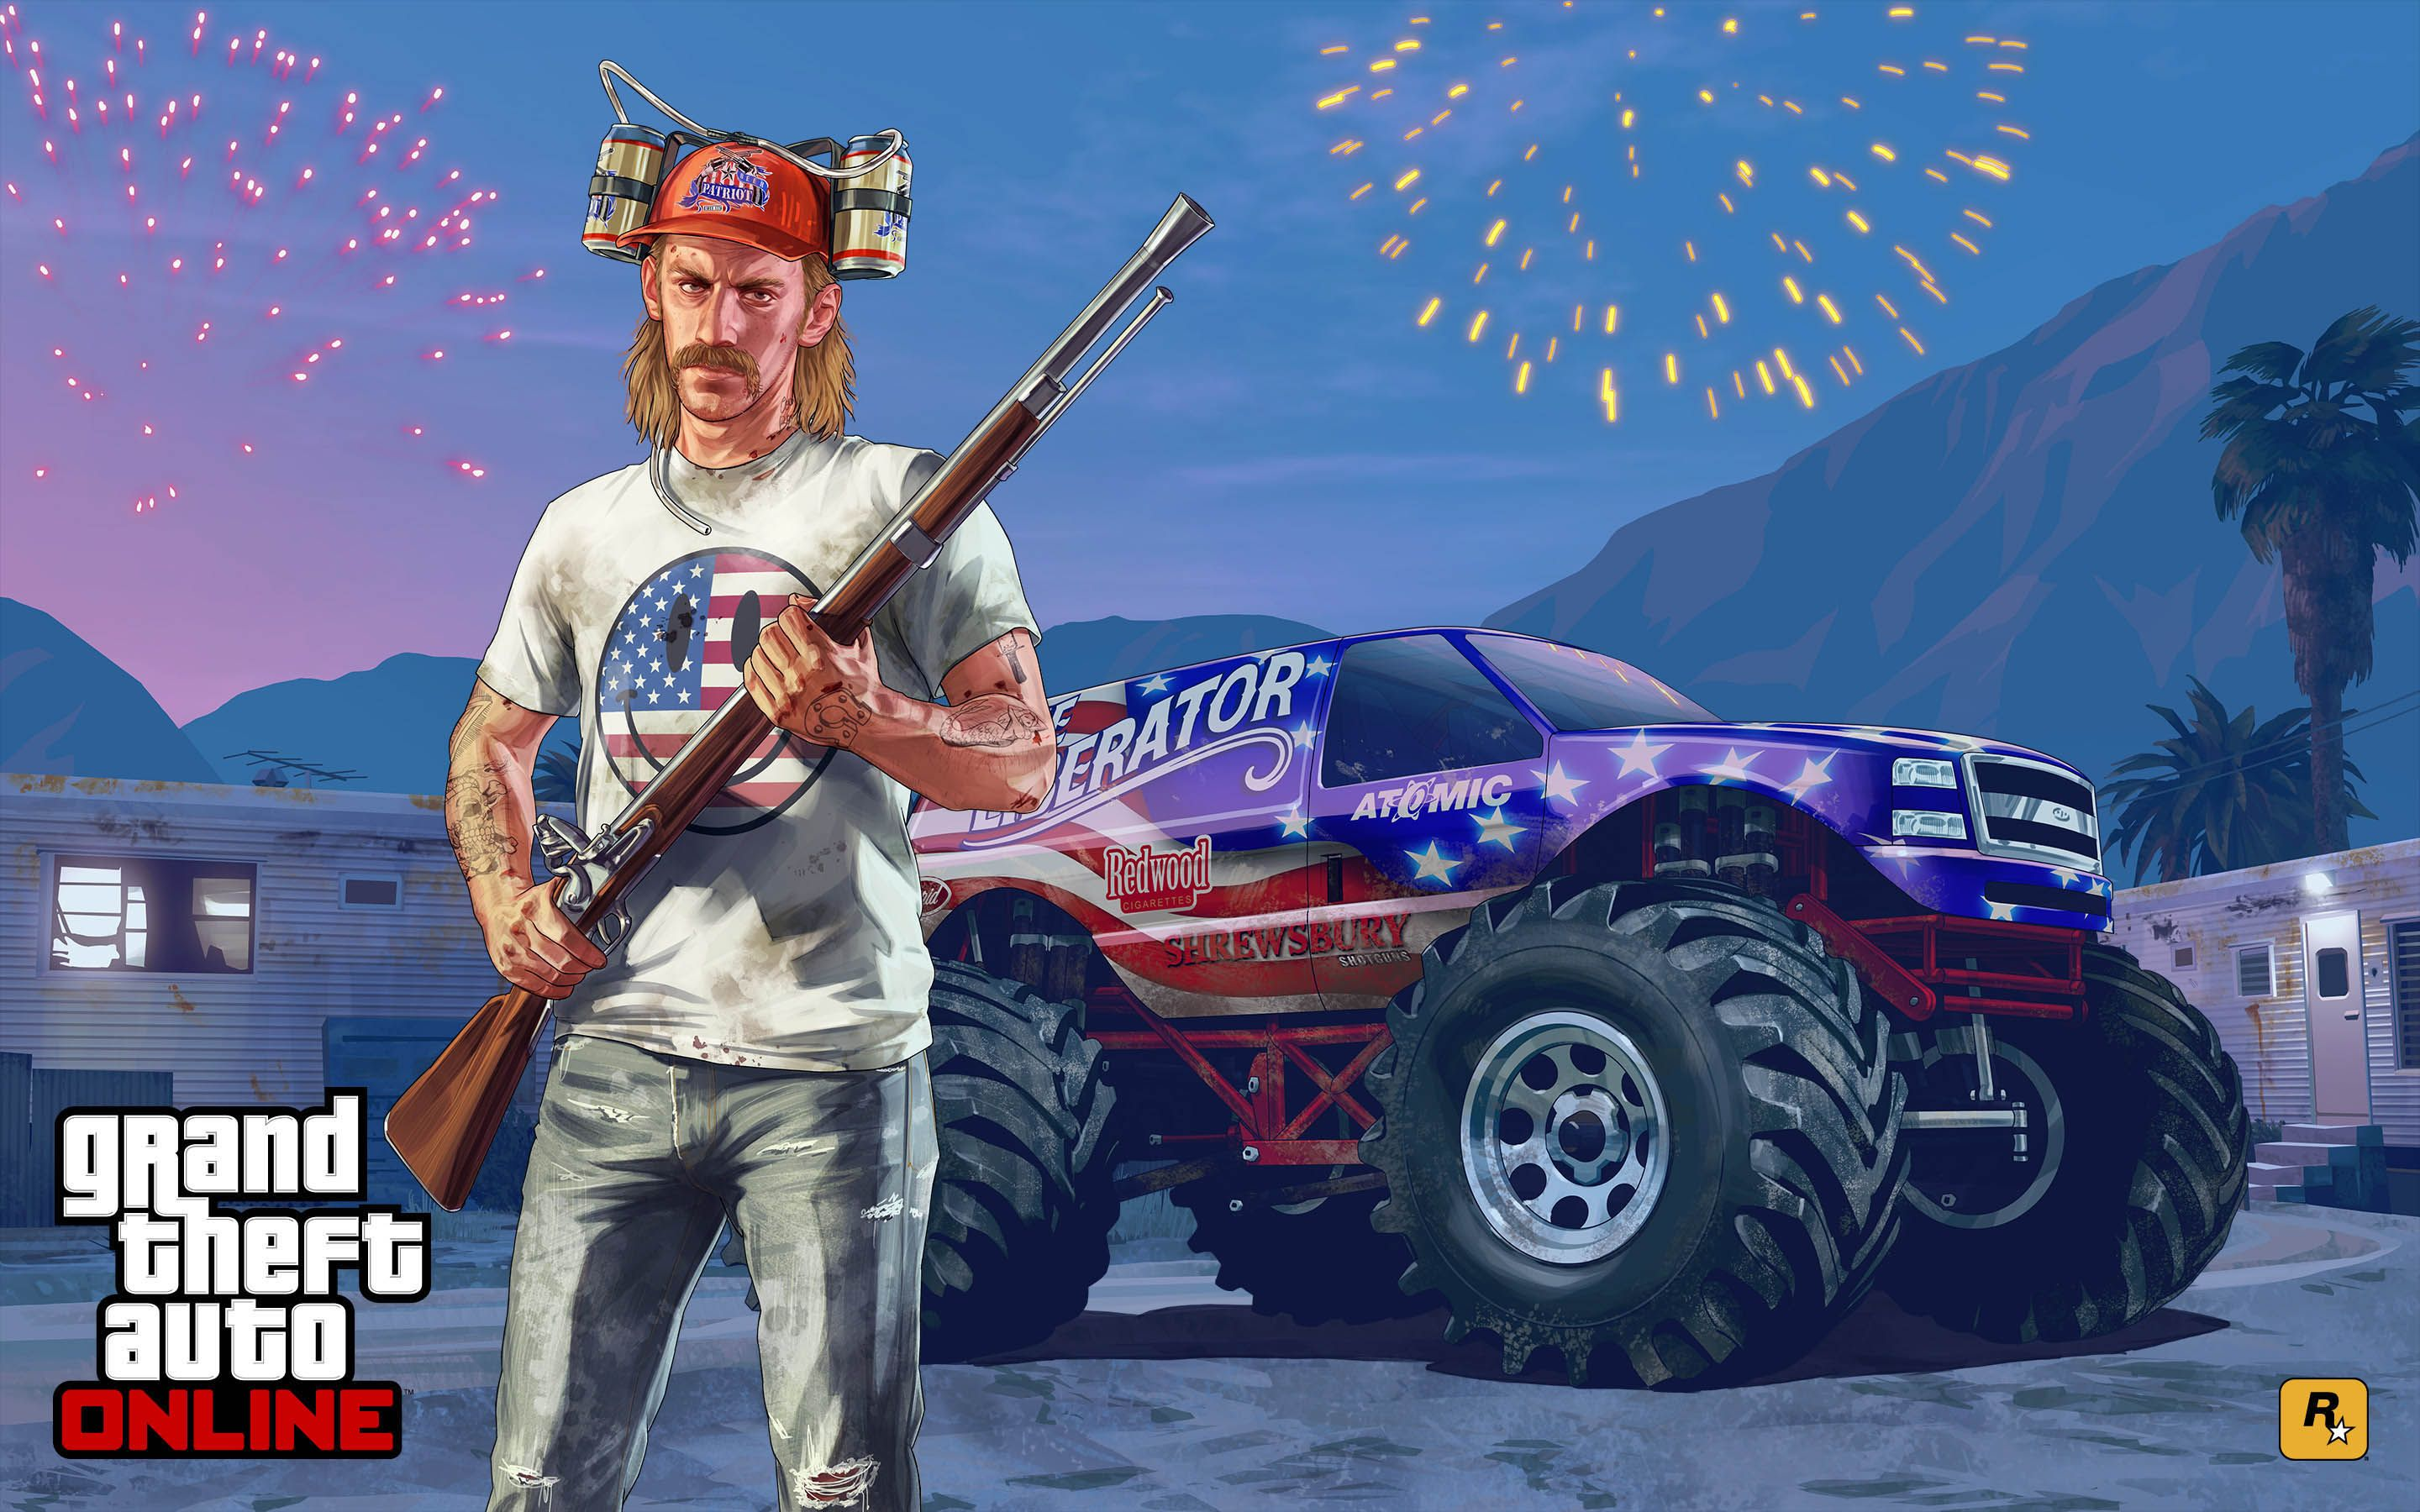 Independence Day Special - GTA 5 Online Update 2880x1800 wallpaper